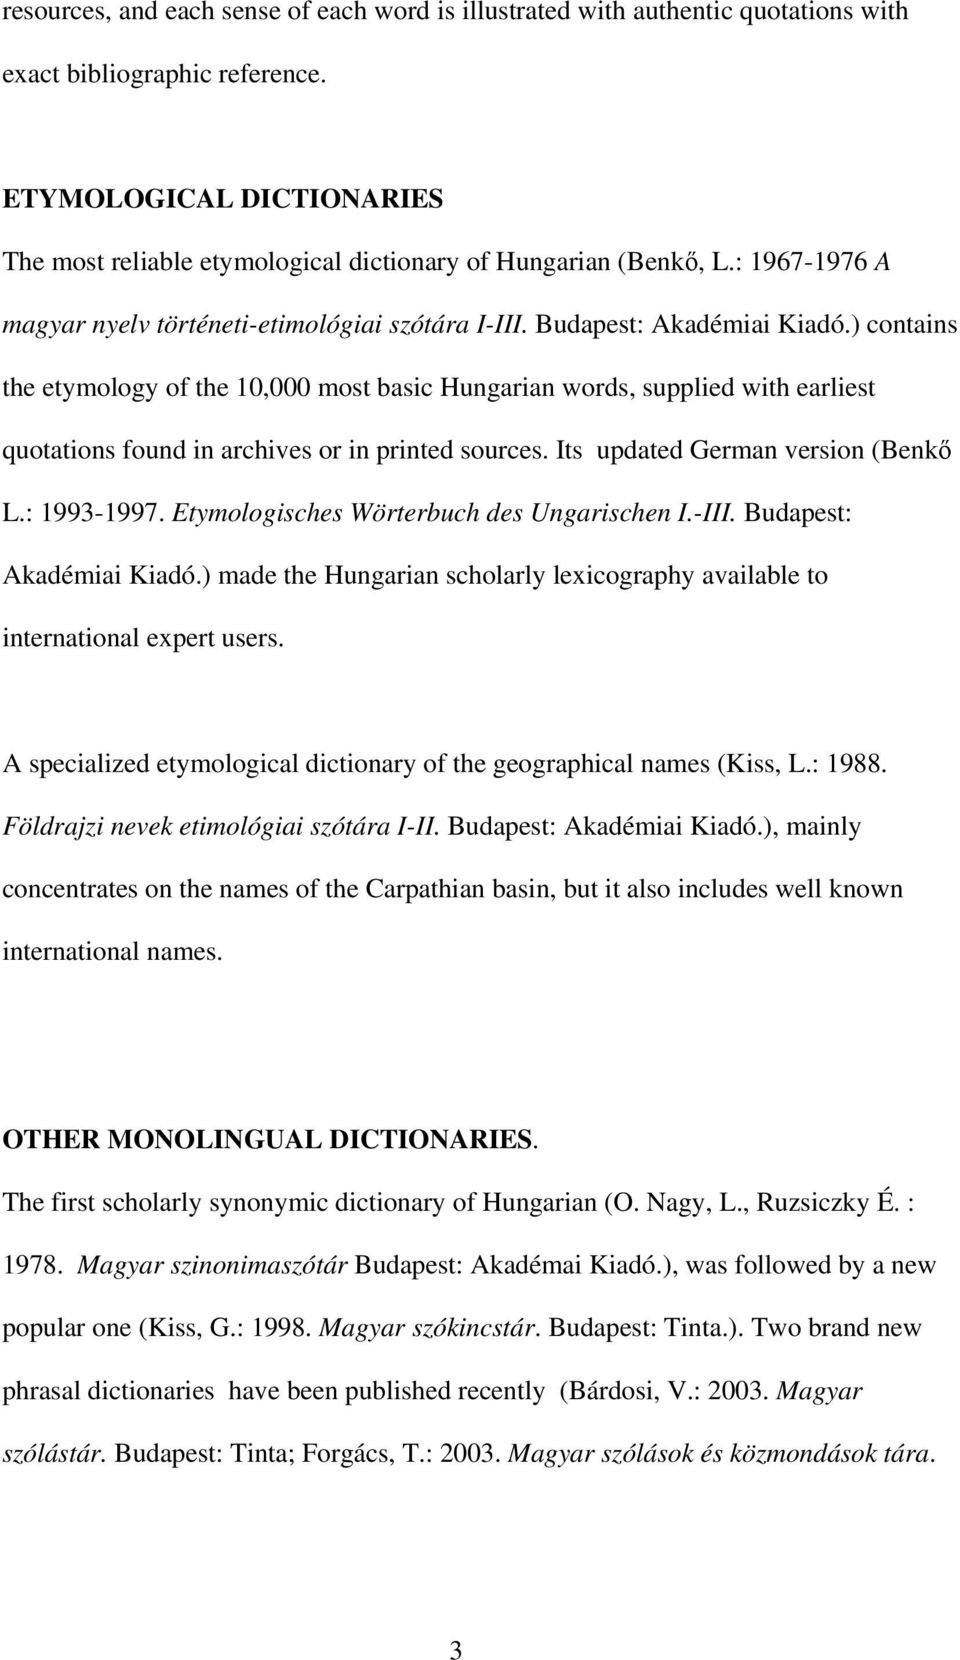 ) contains the etymology of the 10,000 most basic Hungarian words, supplied with earliest quotations found in archives or in printed sources. Its updated German version (Benkő L.: 1993-1997.